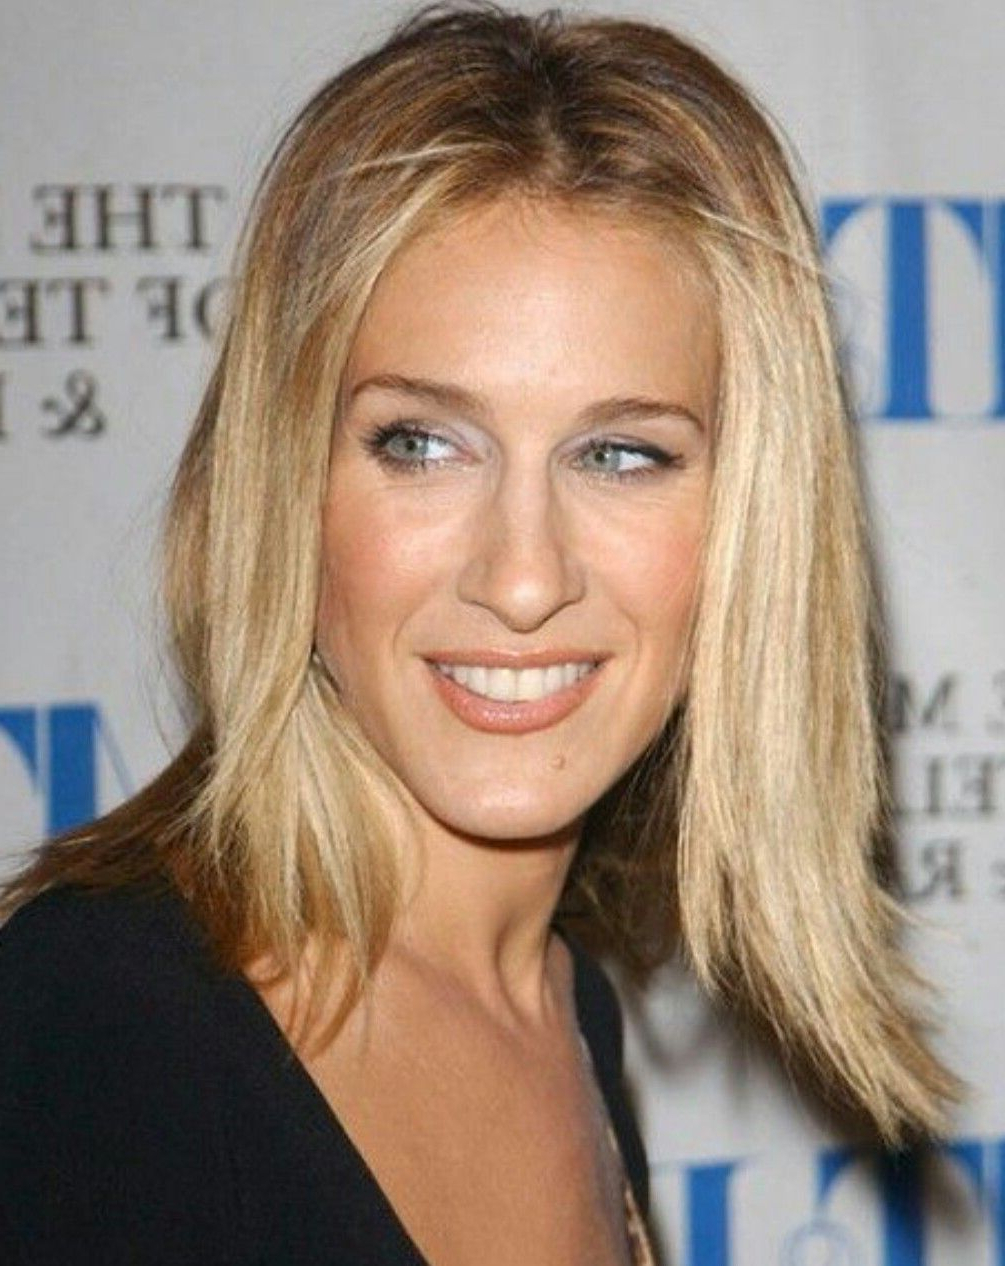 Pinmicheline Claes On Sarah Jessica Parker The Itgirl For Sarah Jessica Parker Short Hairstyles (View 17 of 25)